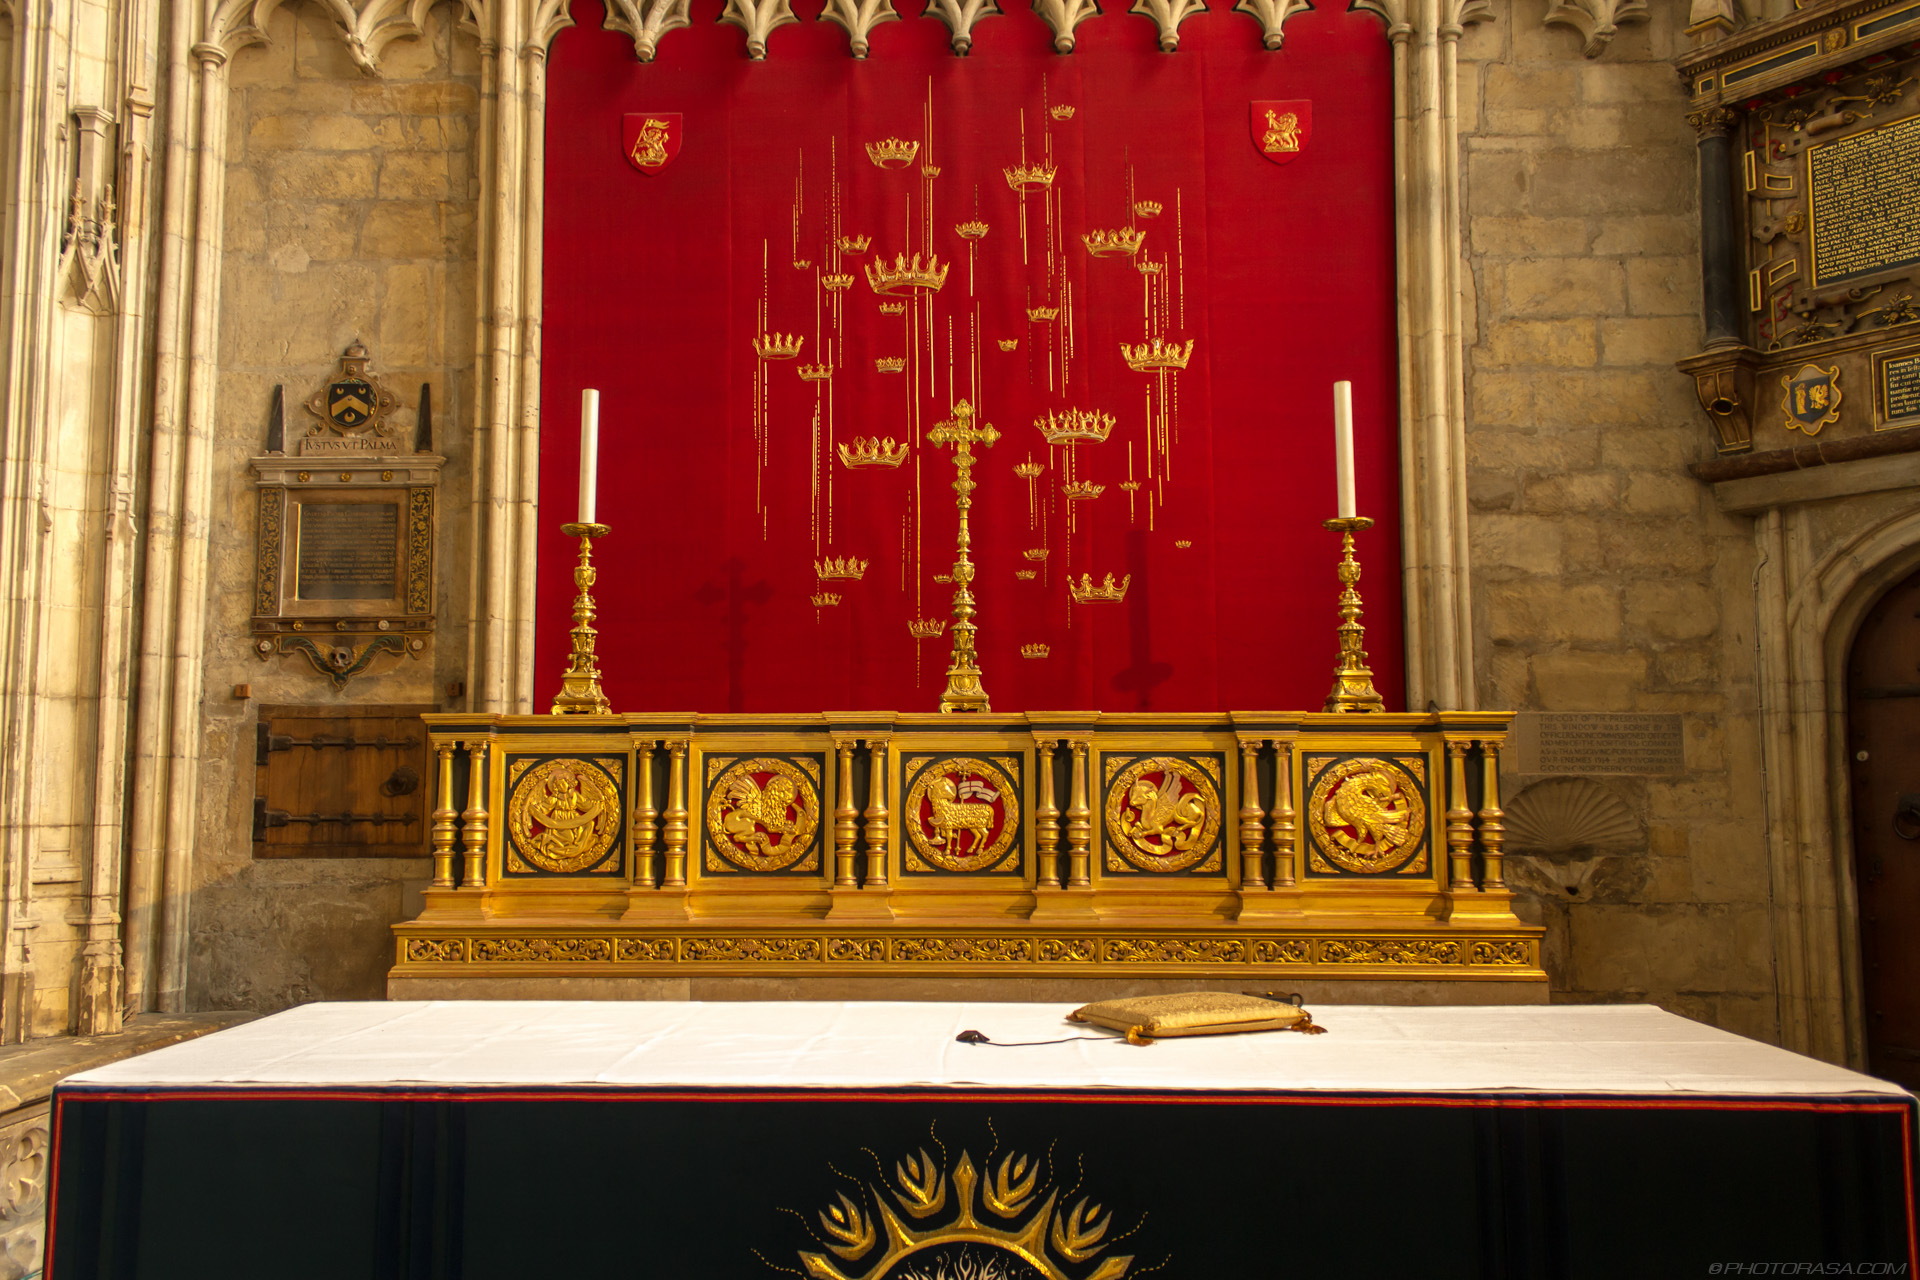 http://photorasa.com/places/yorkminster-cathedral/attachment/all-saints-chapel-altar/